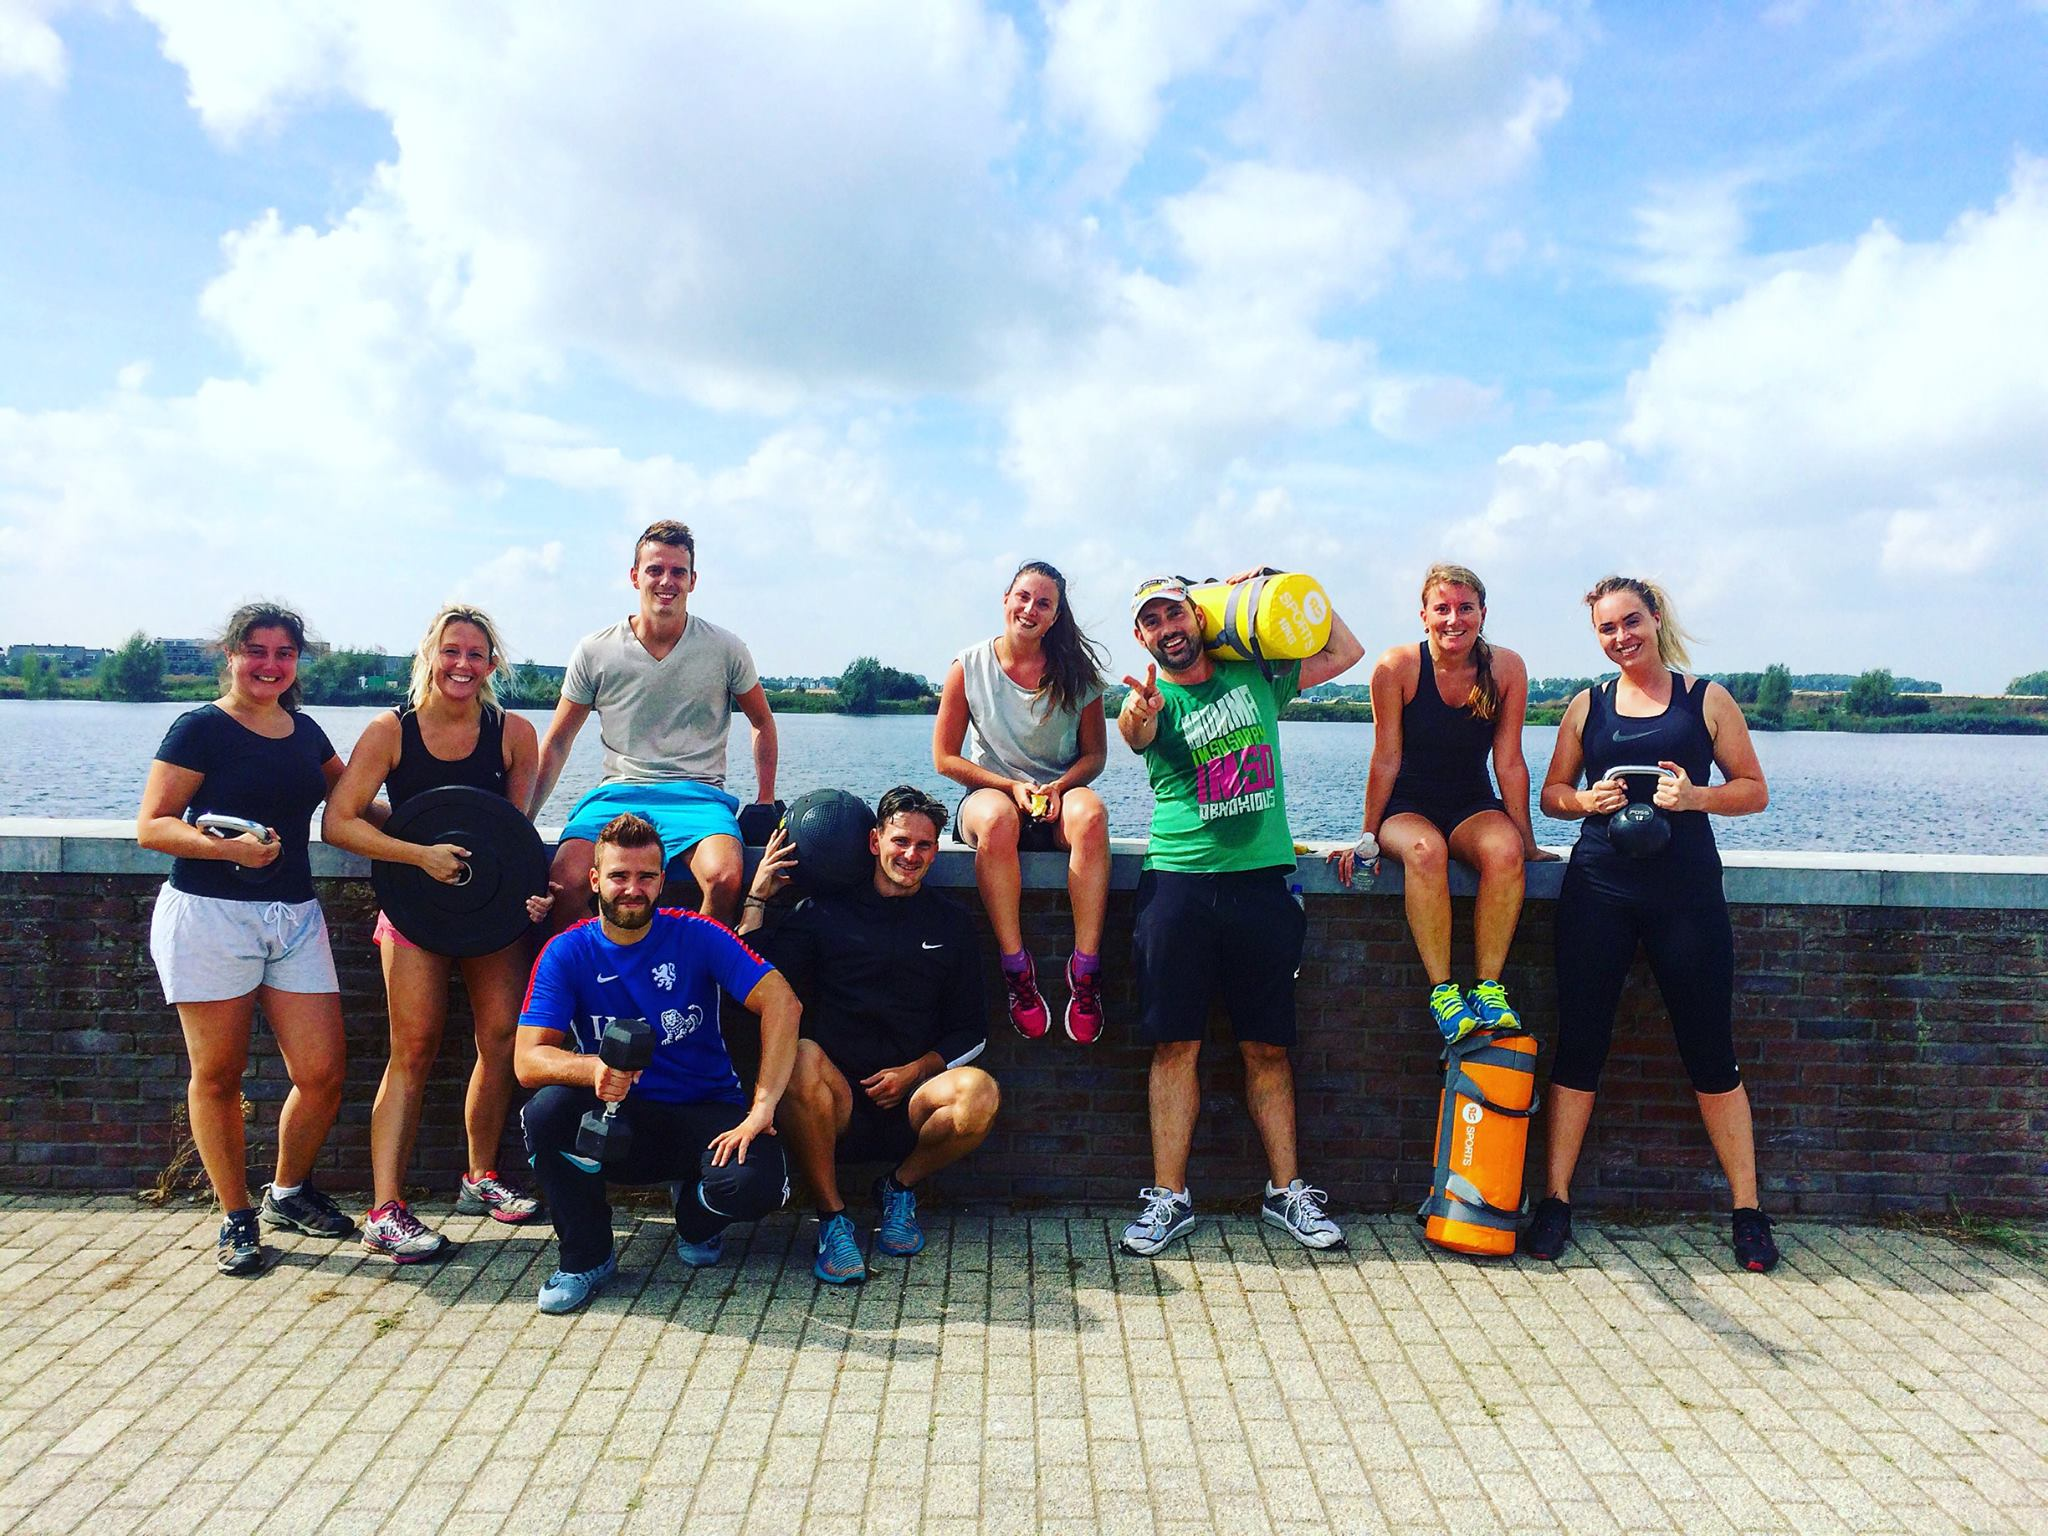 bfit personal training personal trainer den bosch voedingsadvies bootcamp